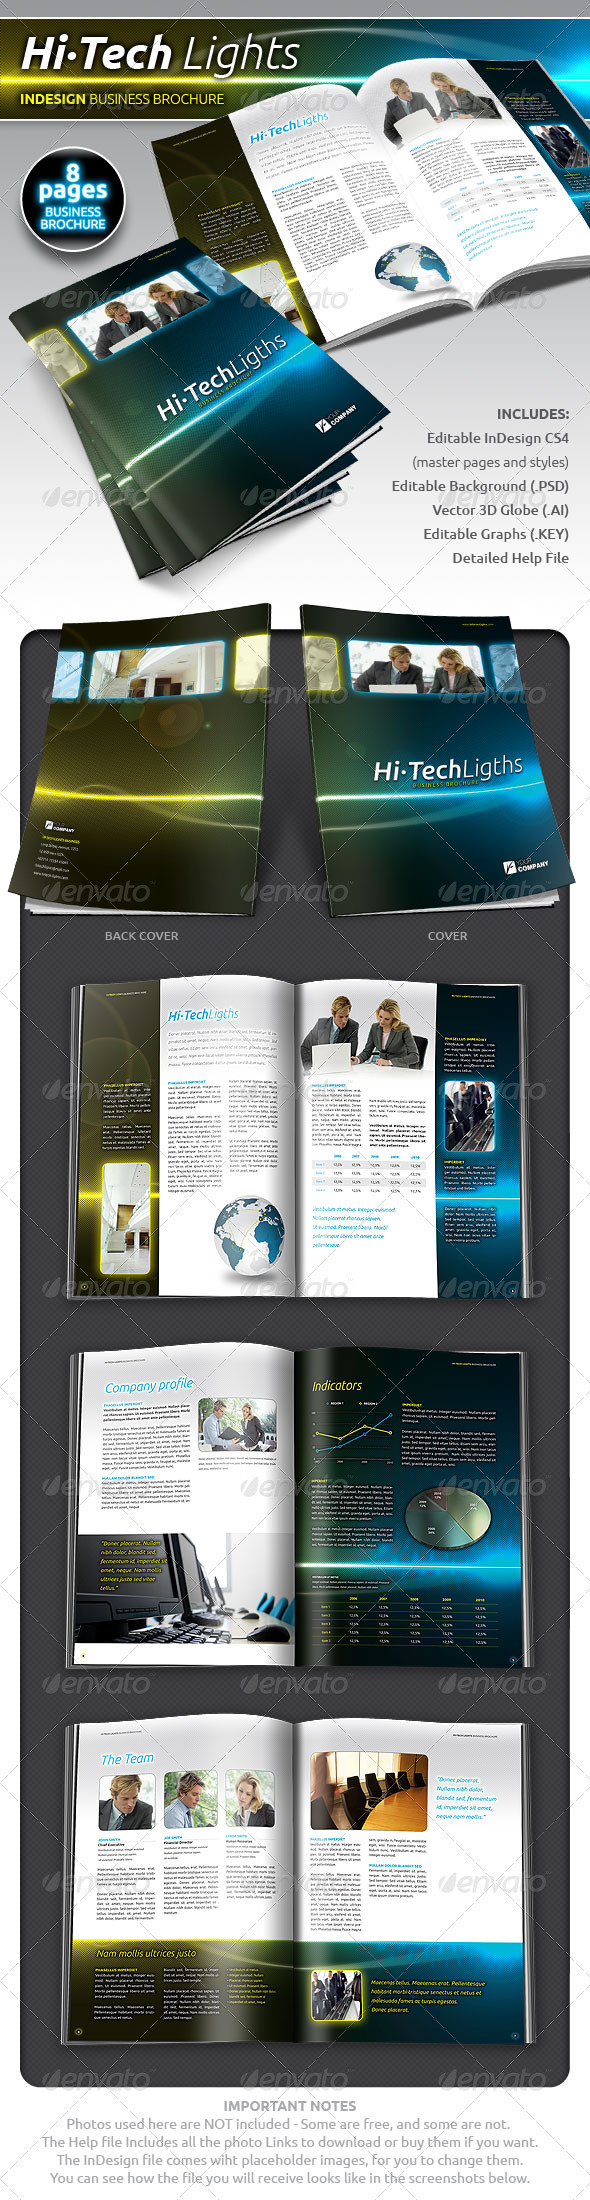 Hi-Tech Lights Business Brochure - Corporate Brochures